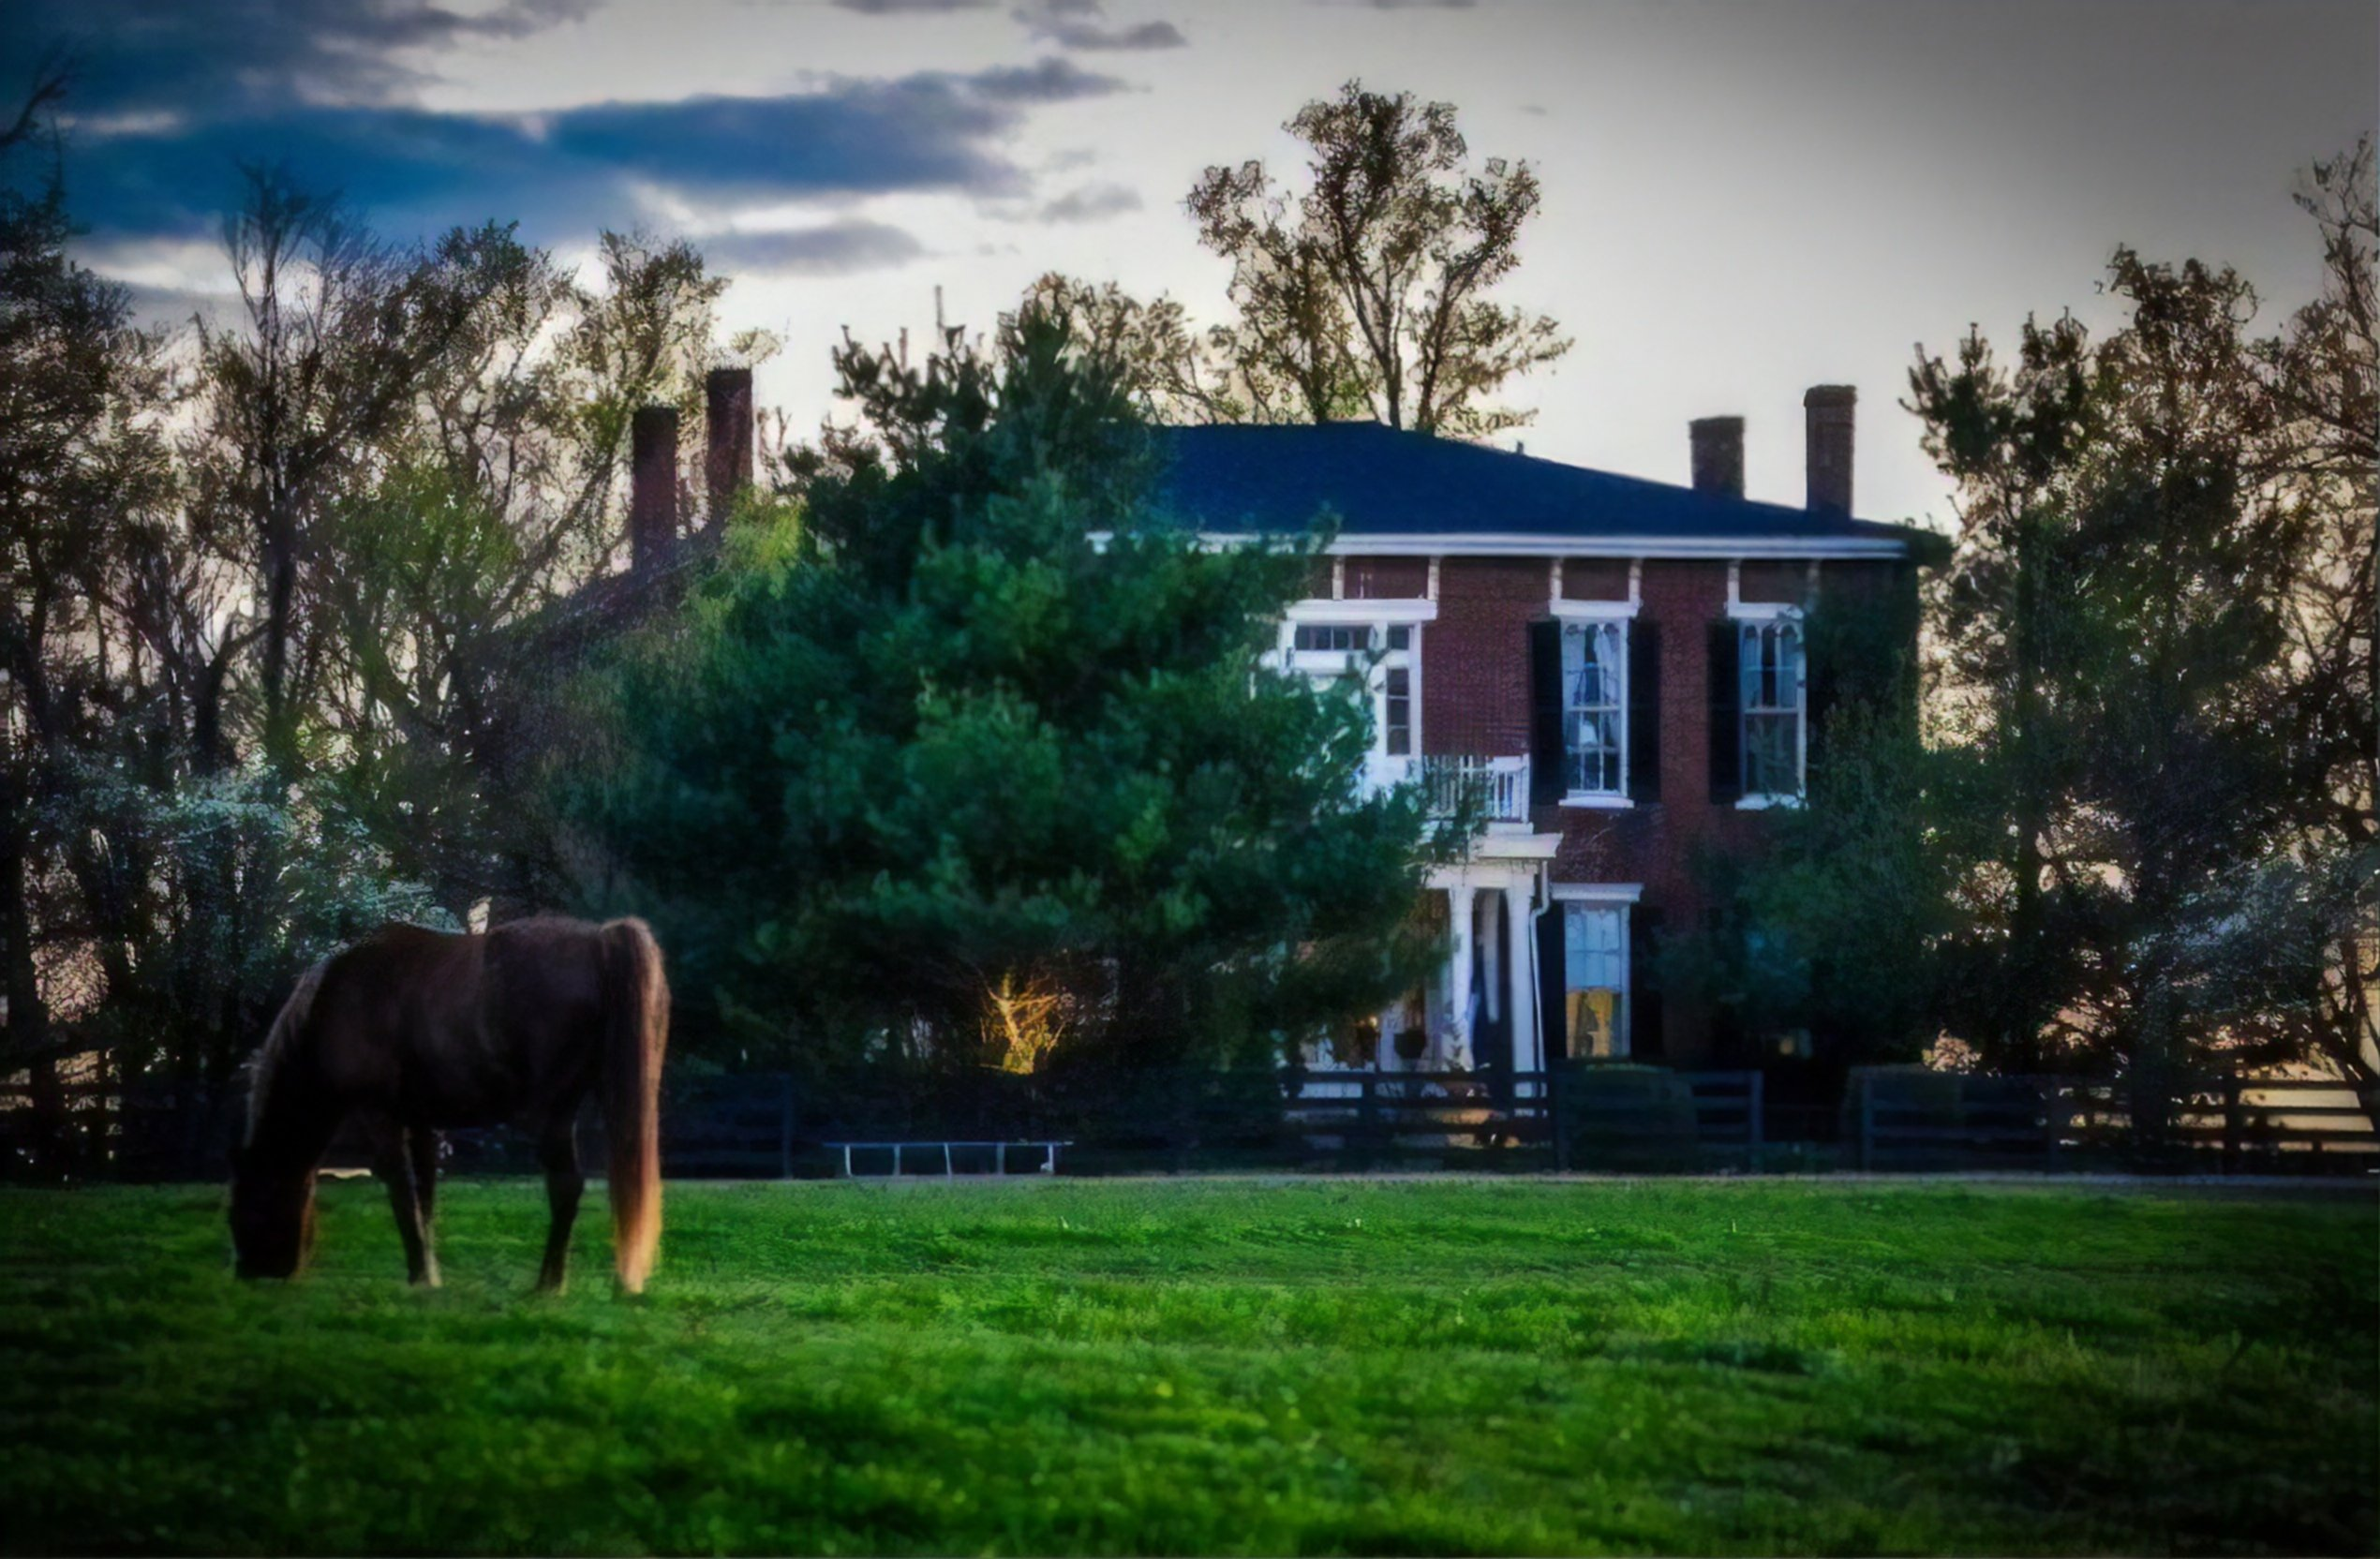 A cow grazing on grass in front of a house at Historic Maple Hill Manor B&B.